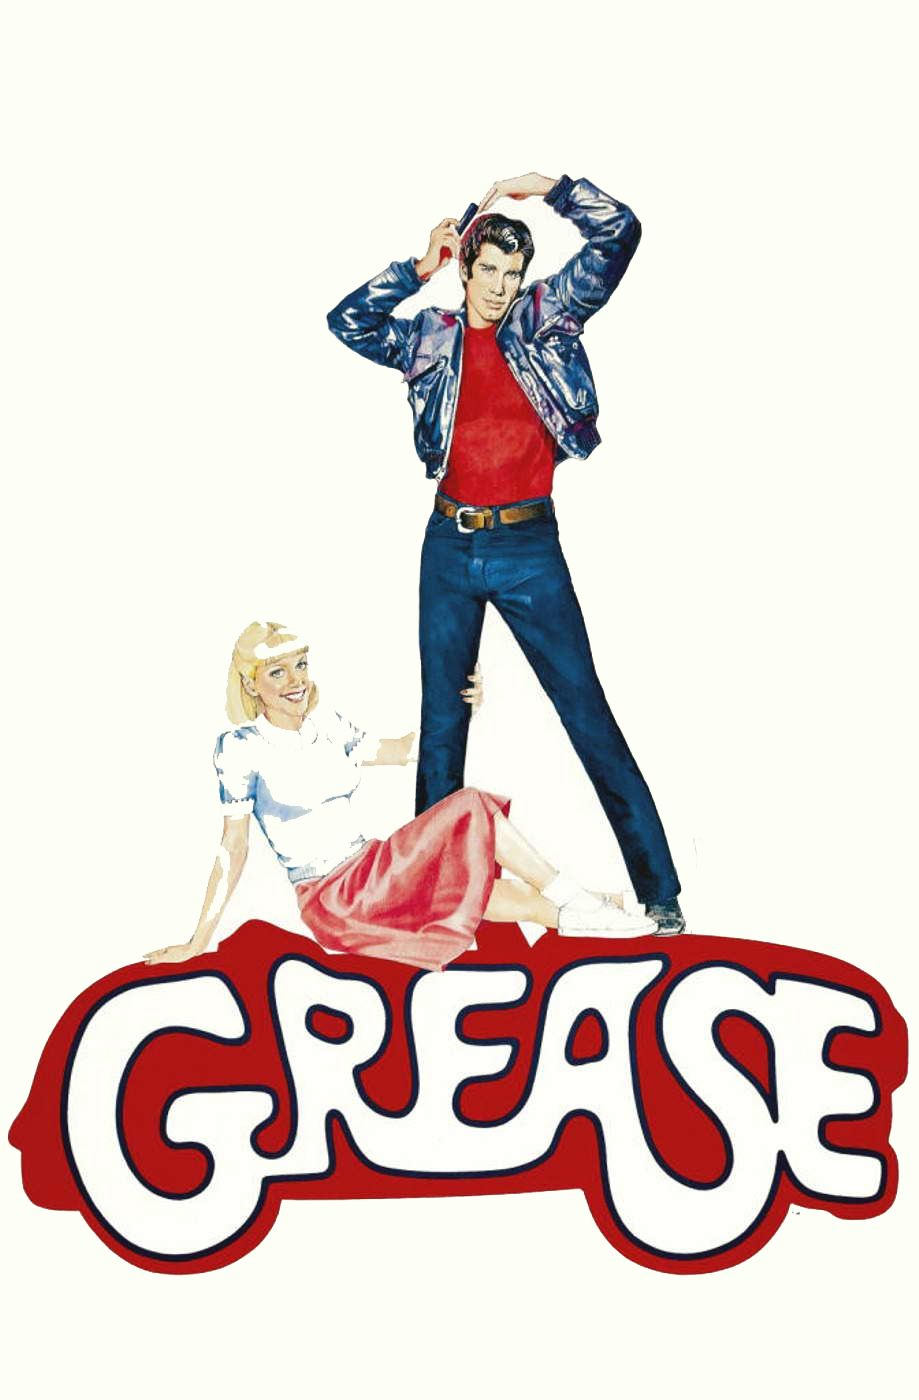 50s clipart greaser, 50s greaser Transparent FREE for.